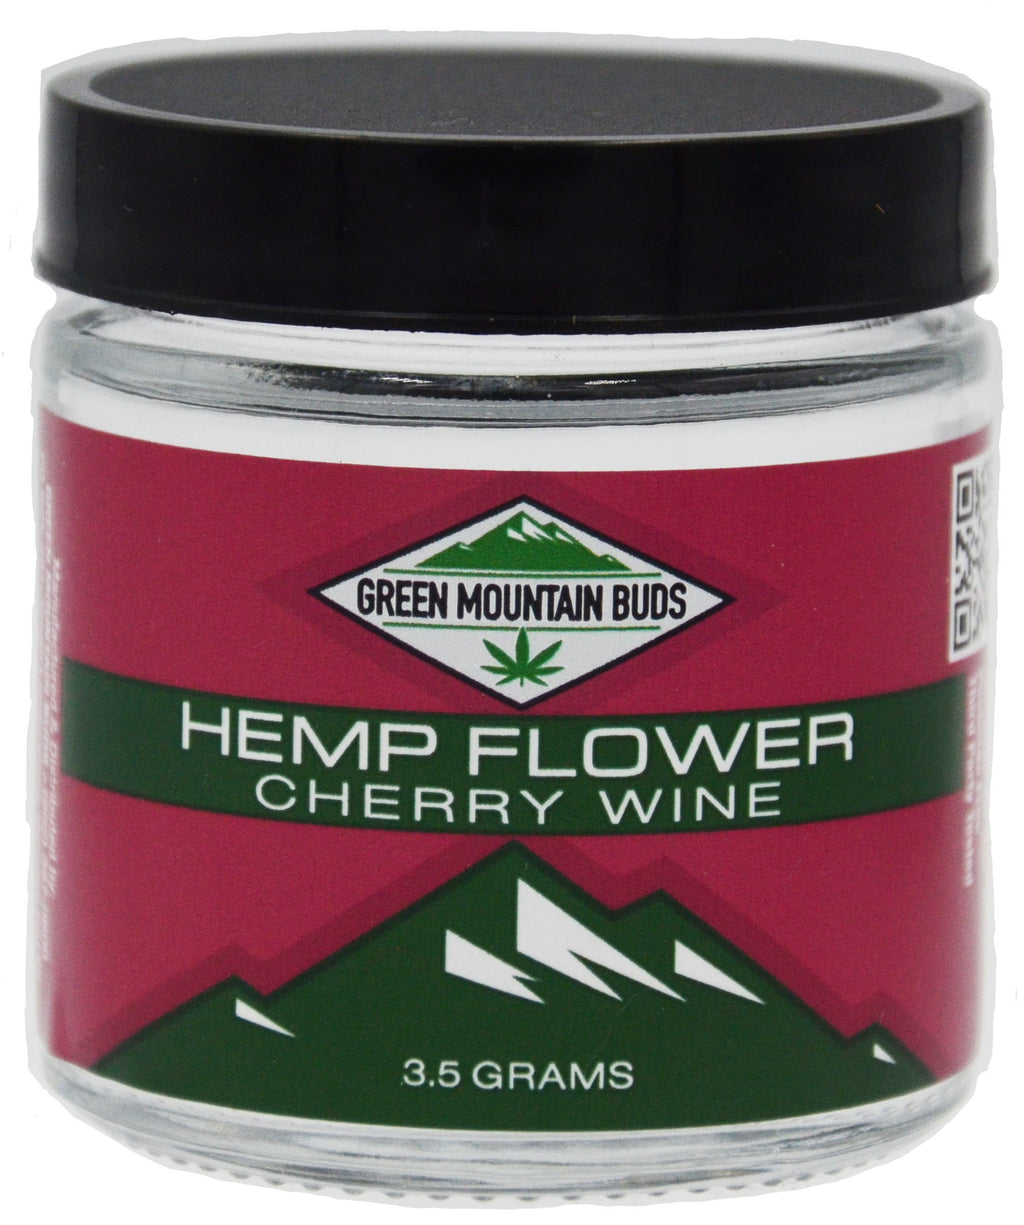 GMB Cherry Wine CBD Hemp Flower - 16.55% CBD